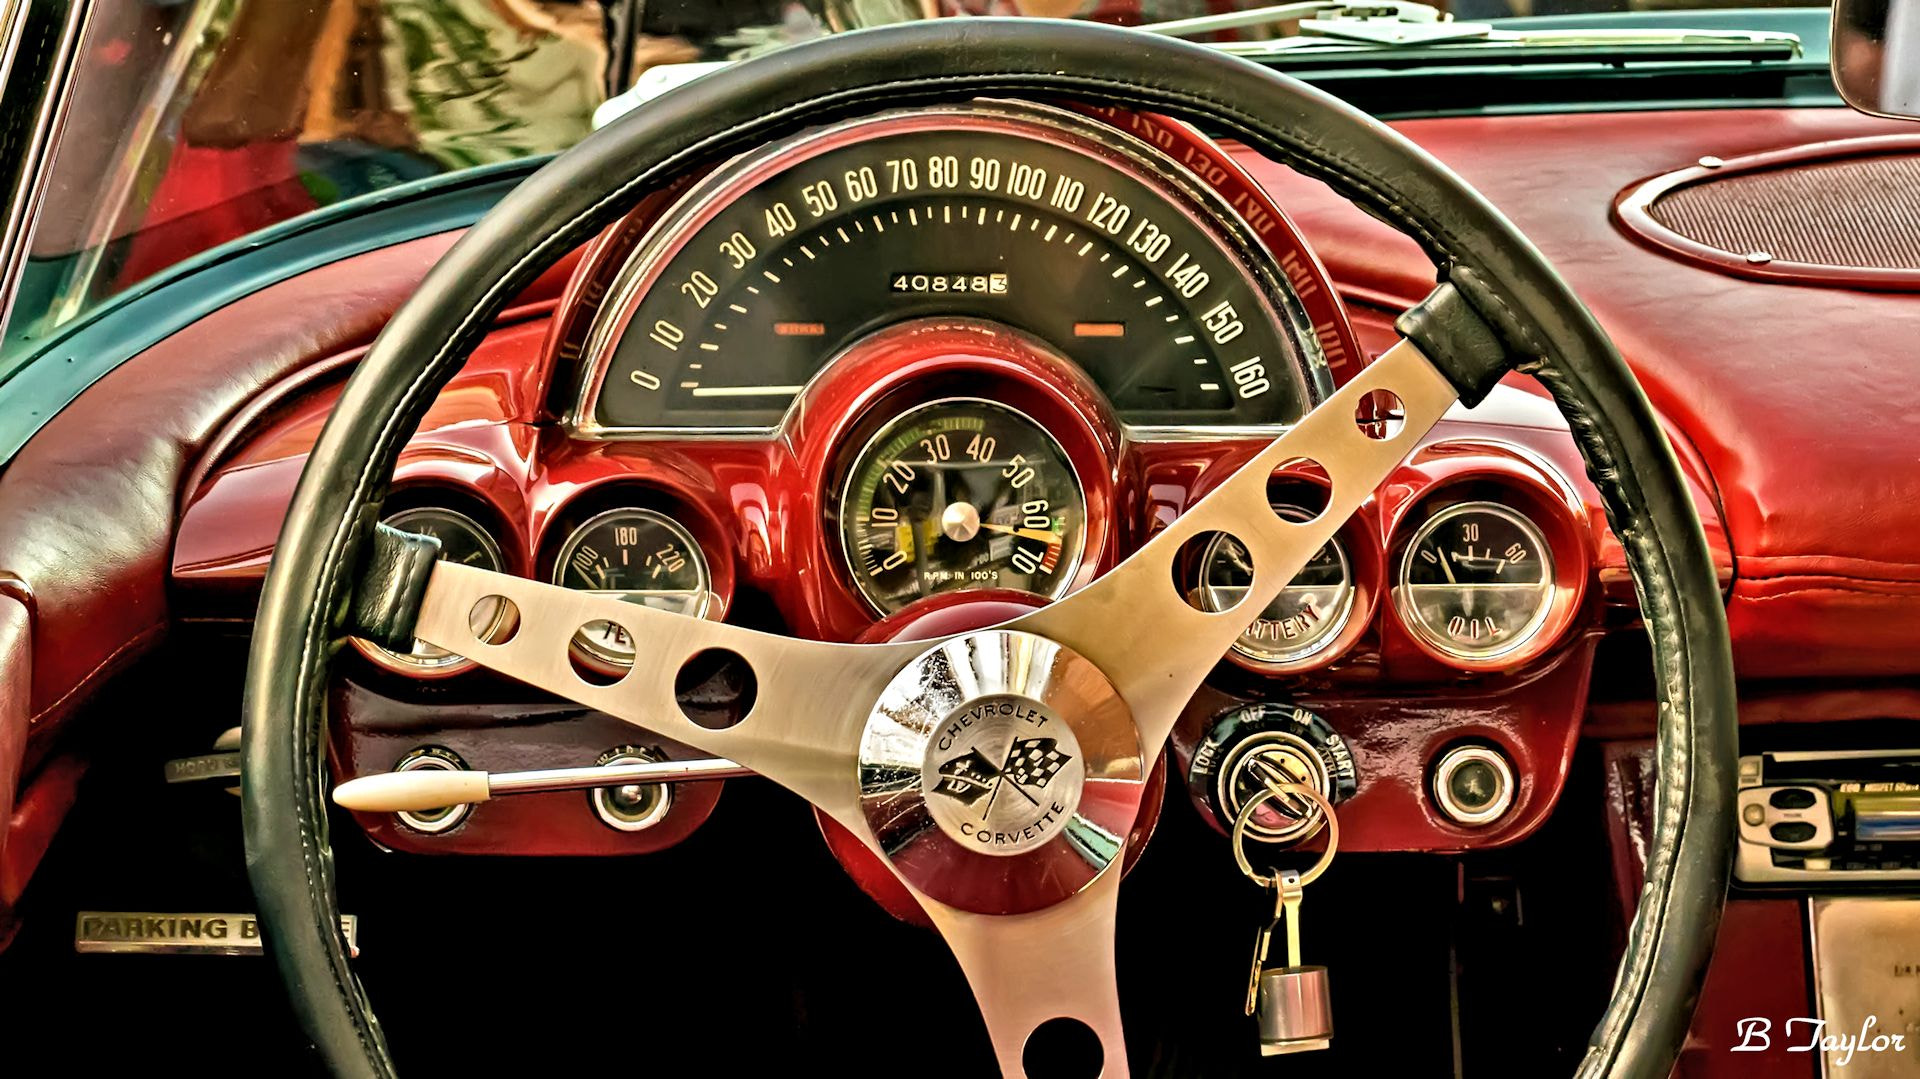 Photograph 1958 Corvette dash by Bradley Taylor on 500px